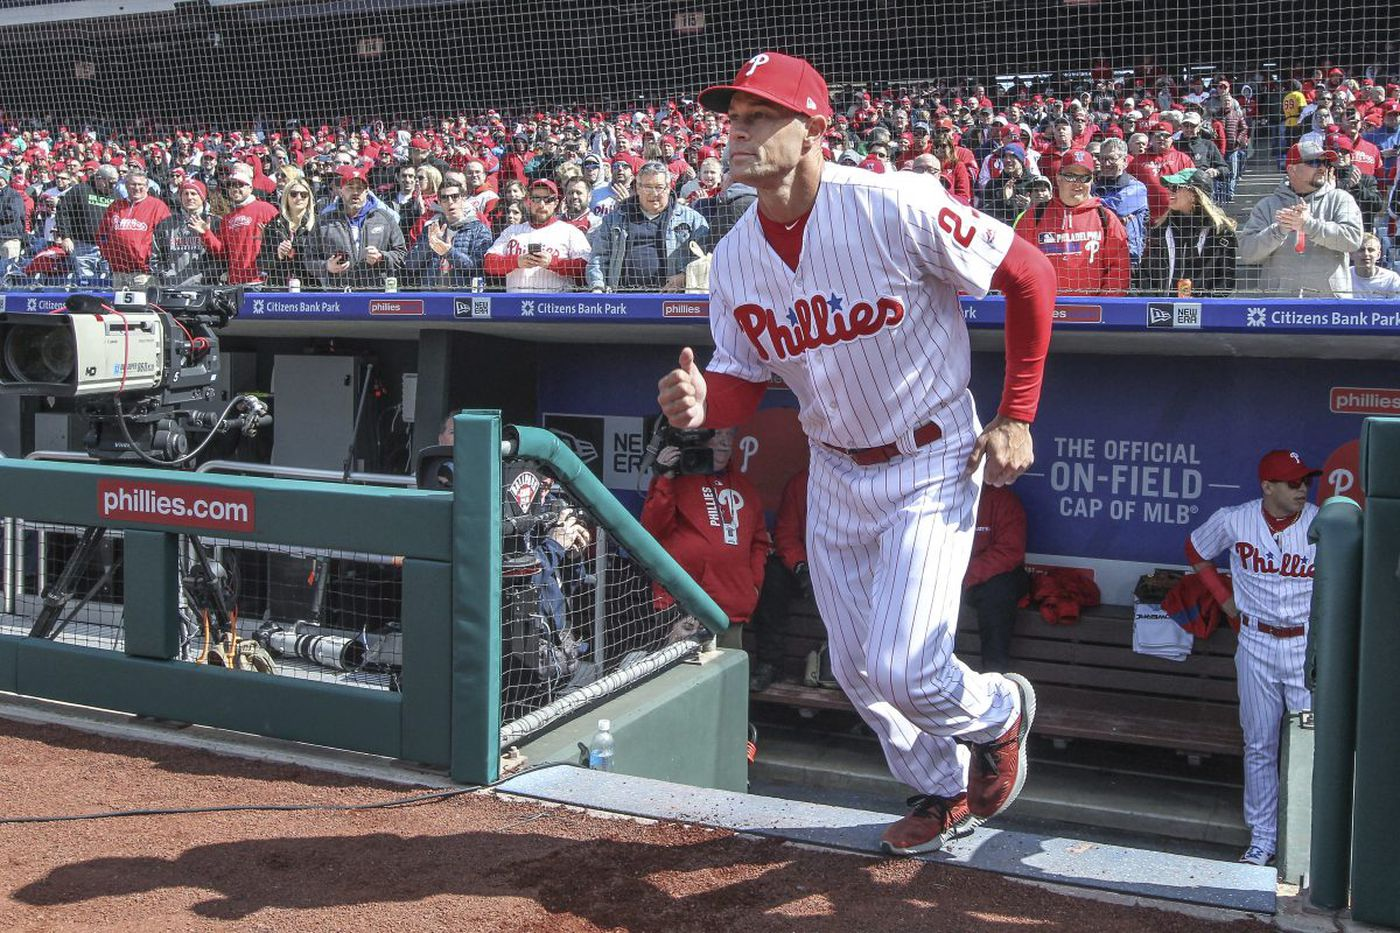 Phillies get a day off following Gabe Kapler's home debut boos | Extra Innings